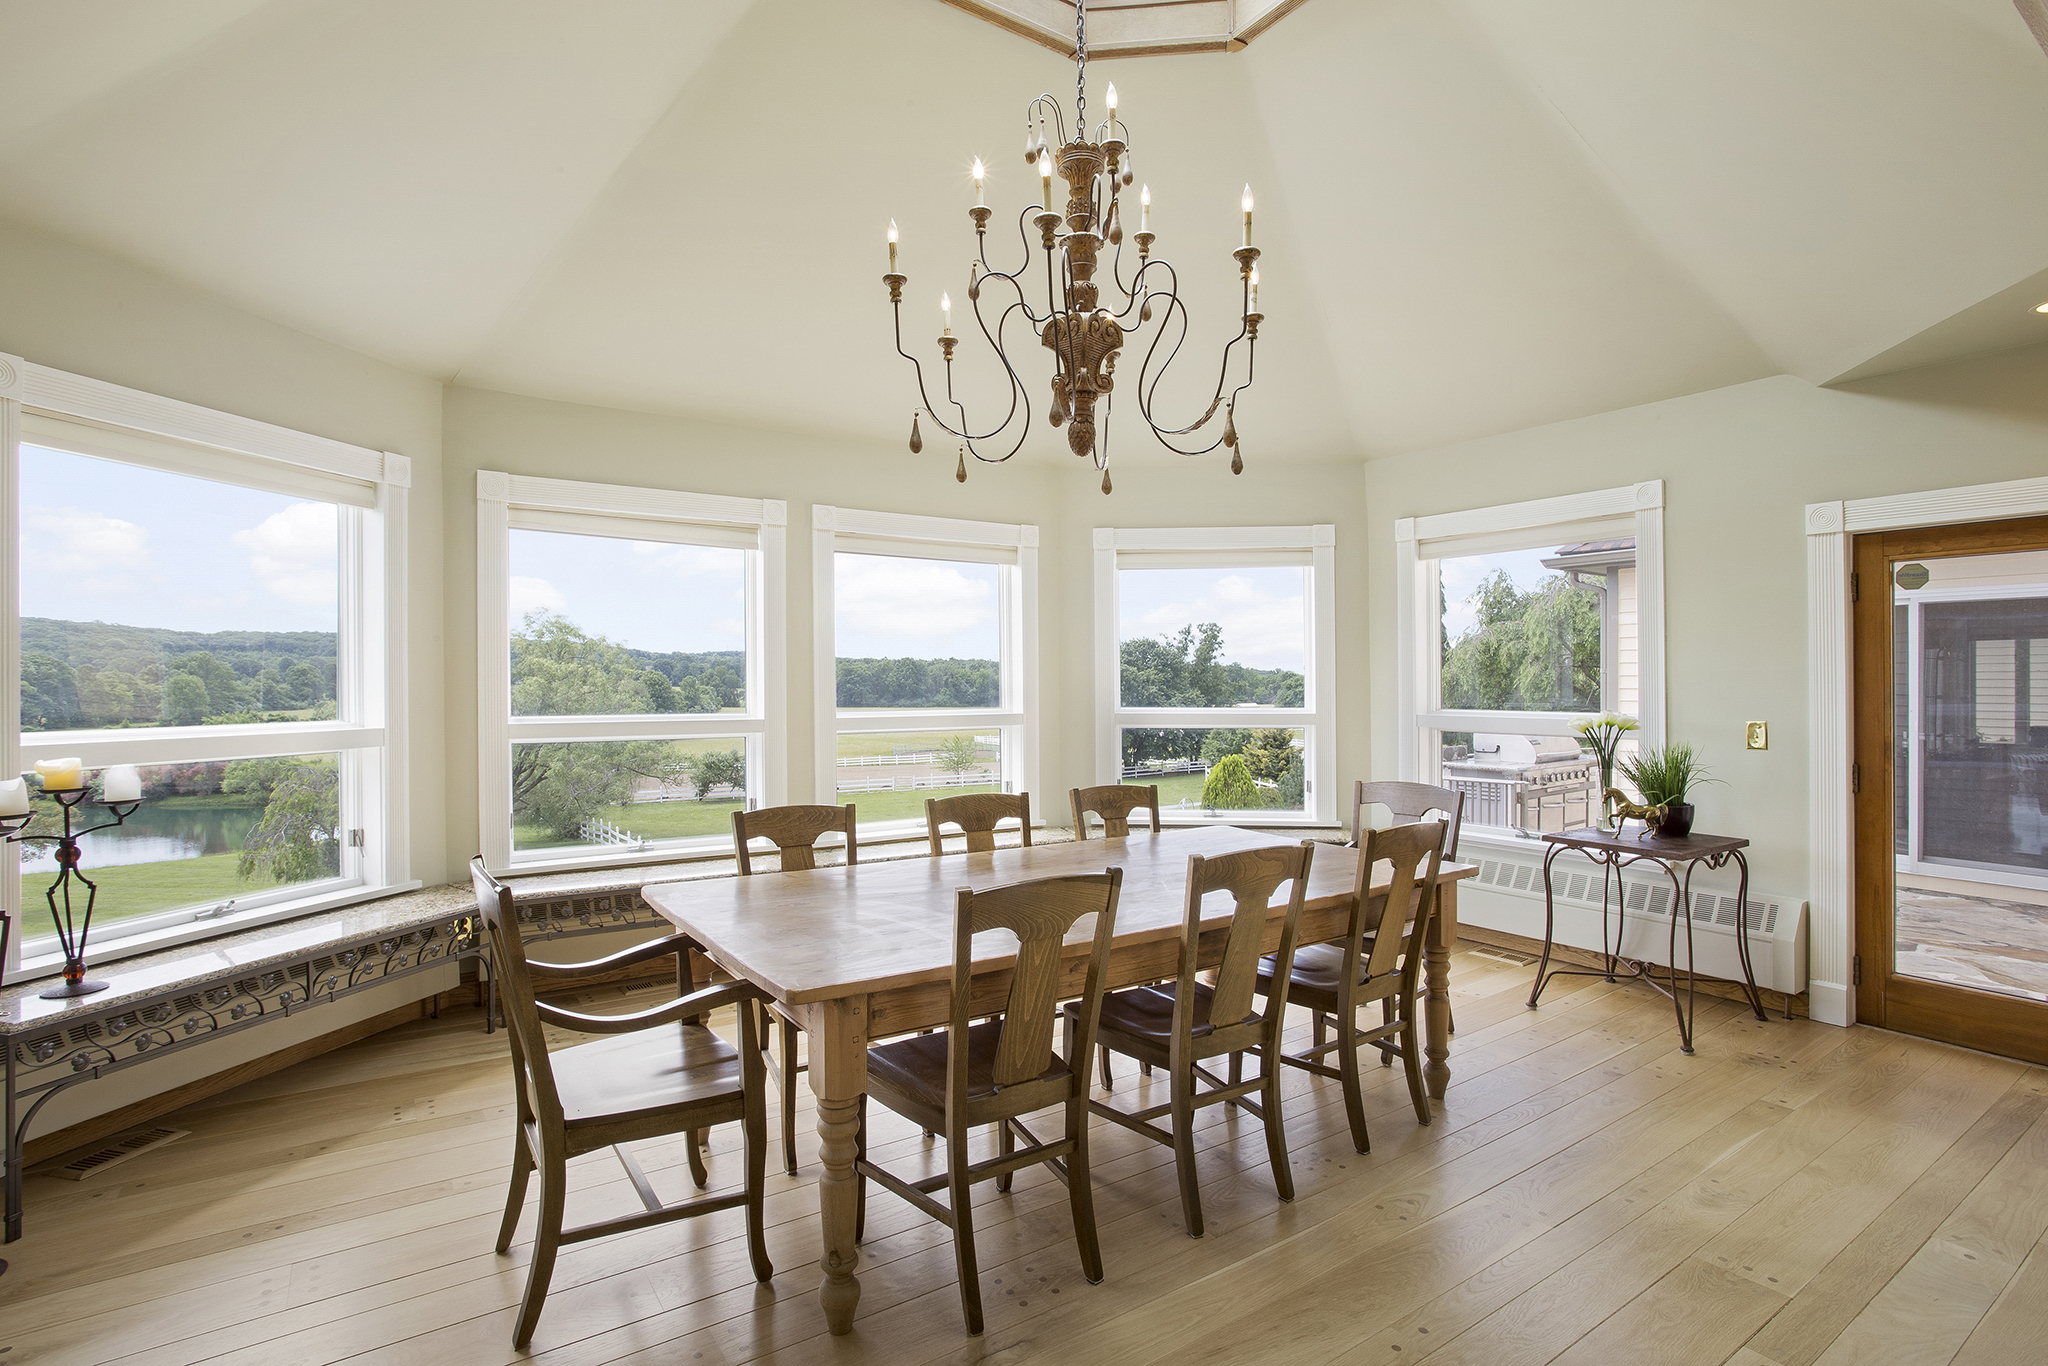 07c 90 Fairmount Road West Tewksbury Township — dining room and patio access